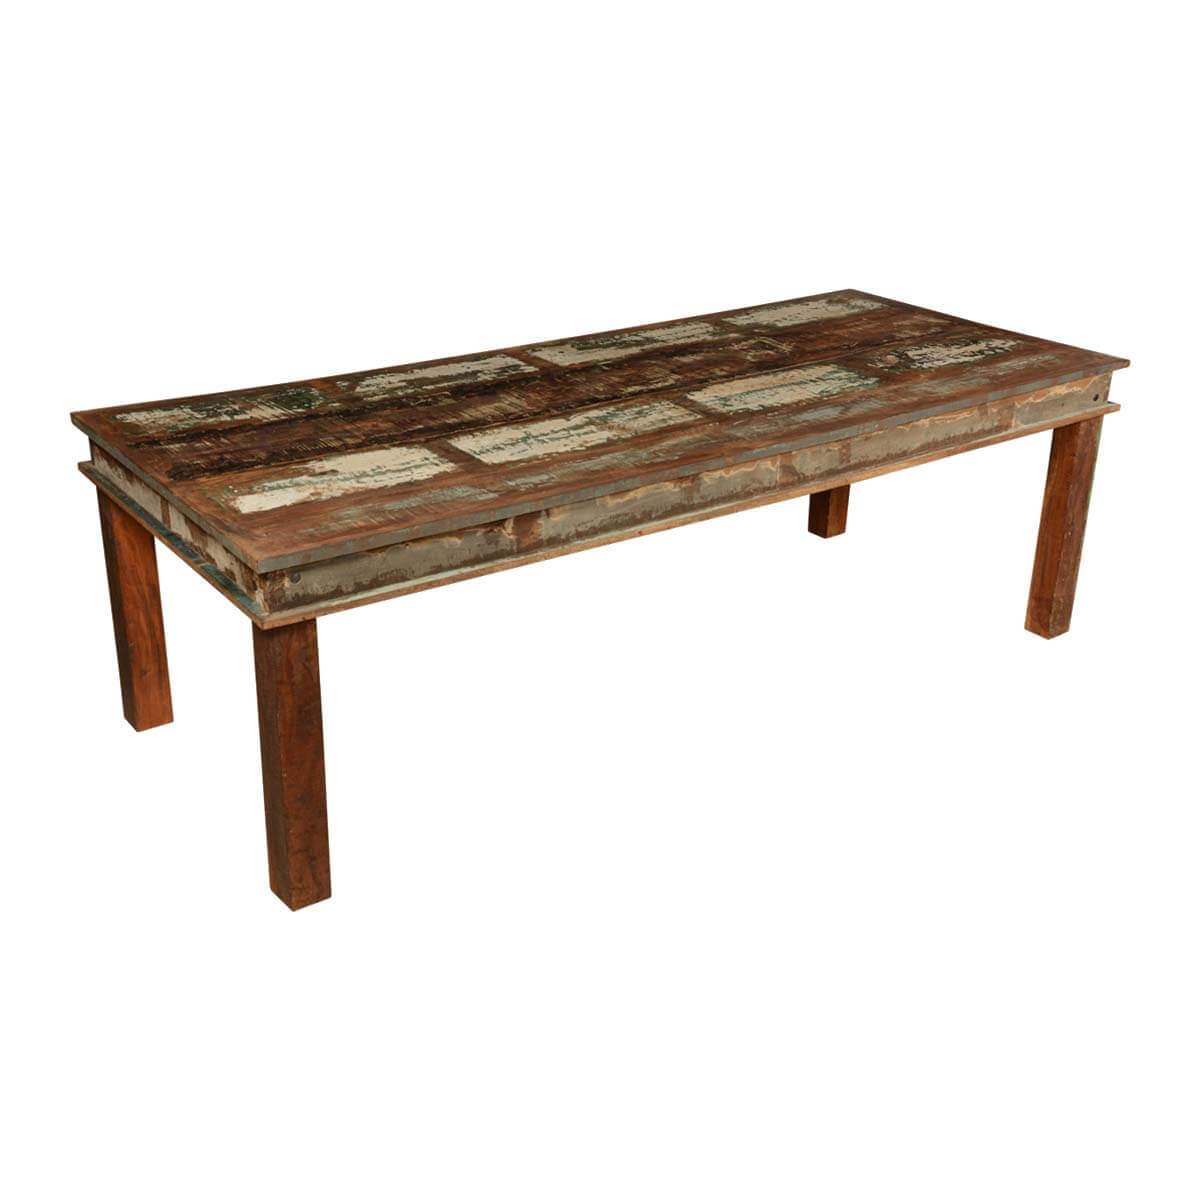 Rustic Wooden Dining Tables ~ Appalachian distressed reclaimed wood rustic dining table